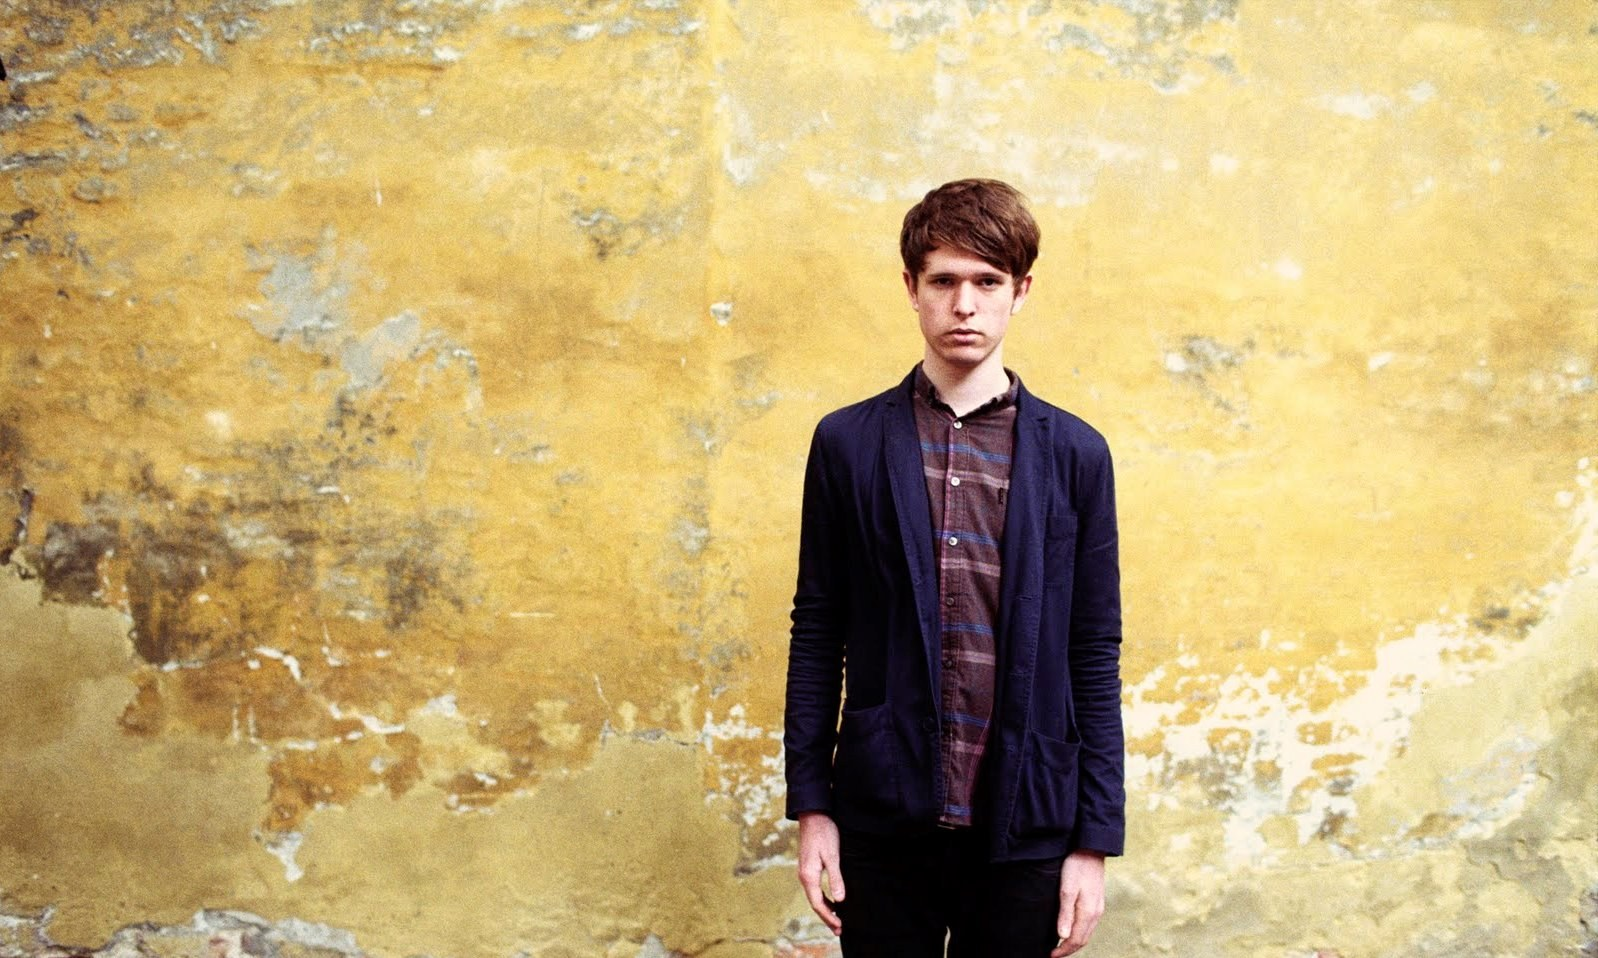 James Blake shares new version of 'Timeless' featuring Vince Staples